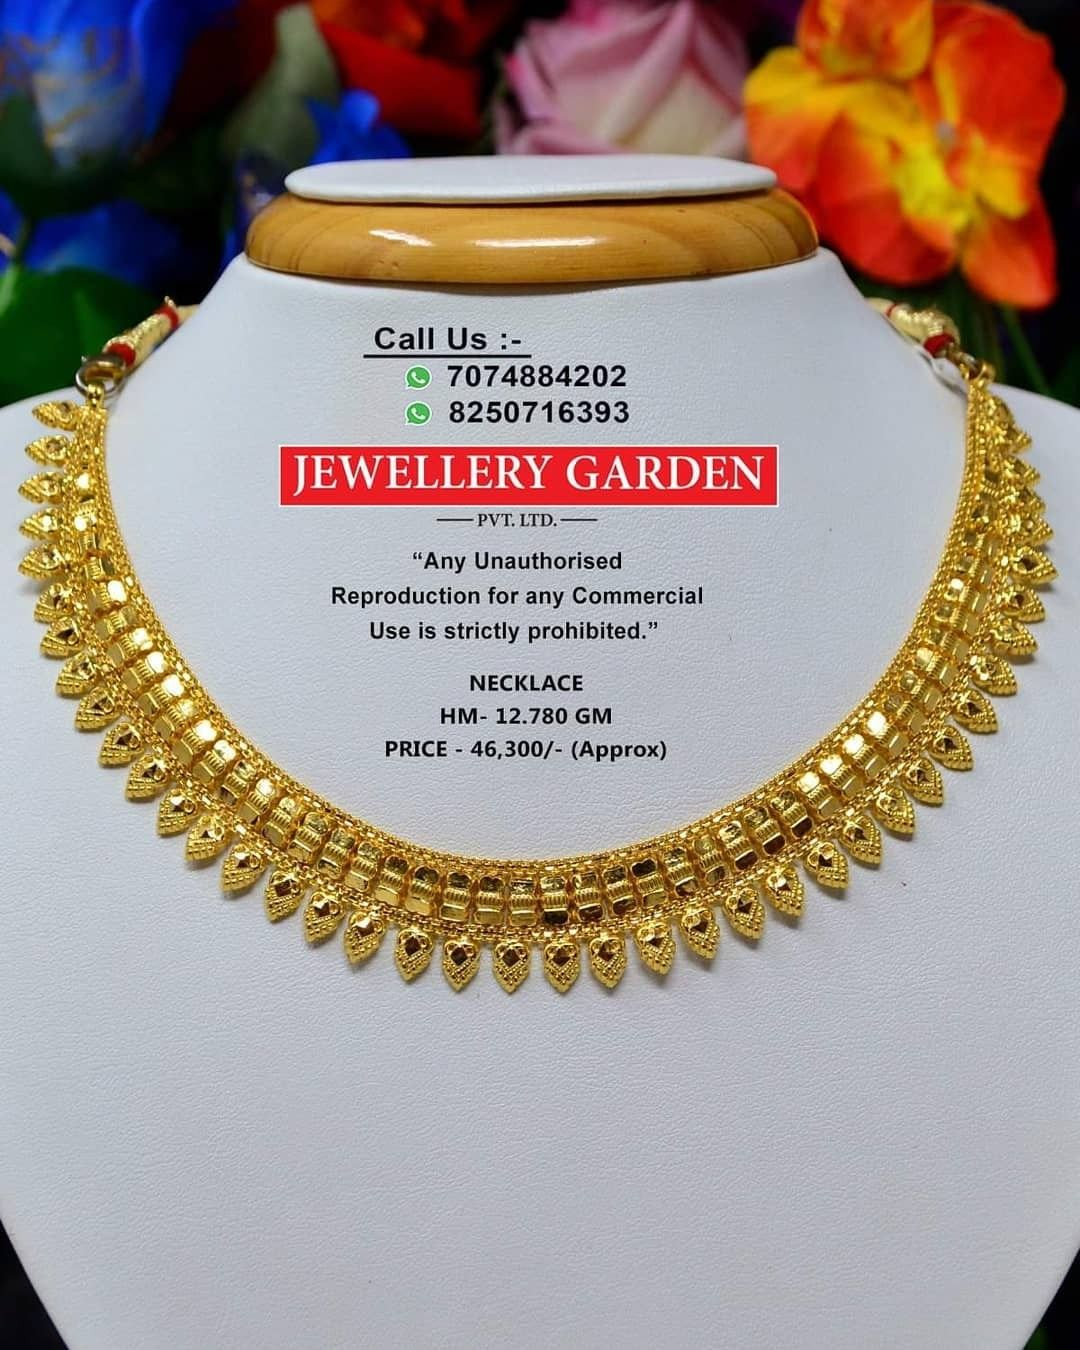 Pin By Divya On Gold Jewelry Gold Jewelry Simple Necklace Gold Jewelry Earrings Gold Jewellery Design Necklaces